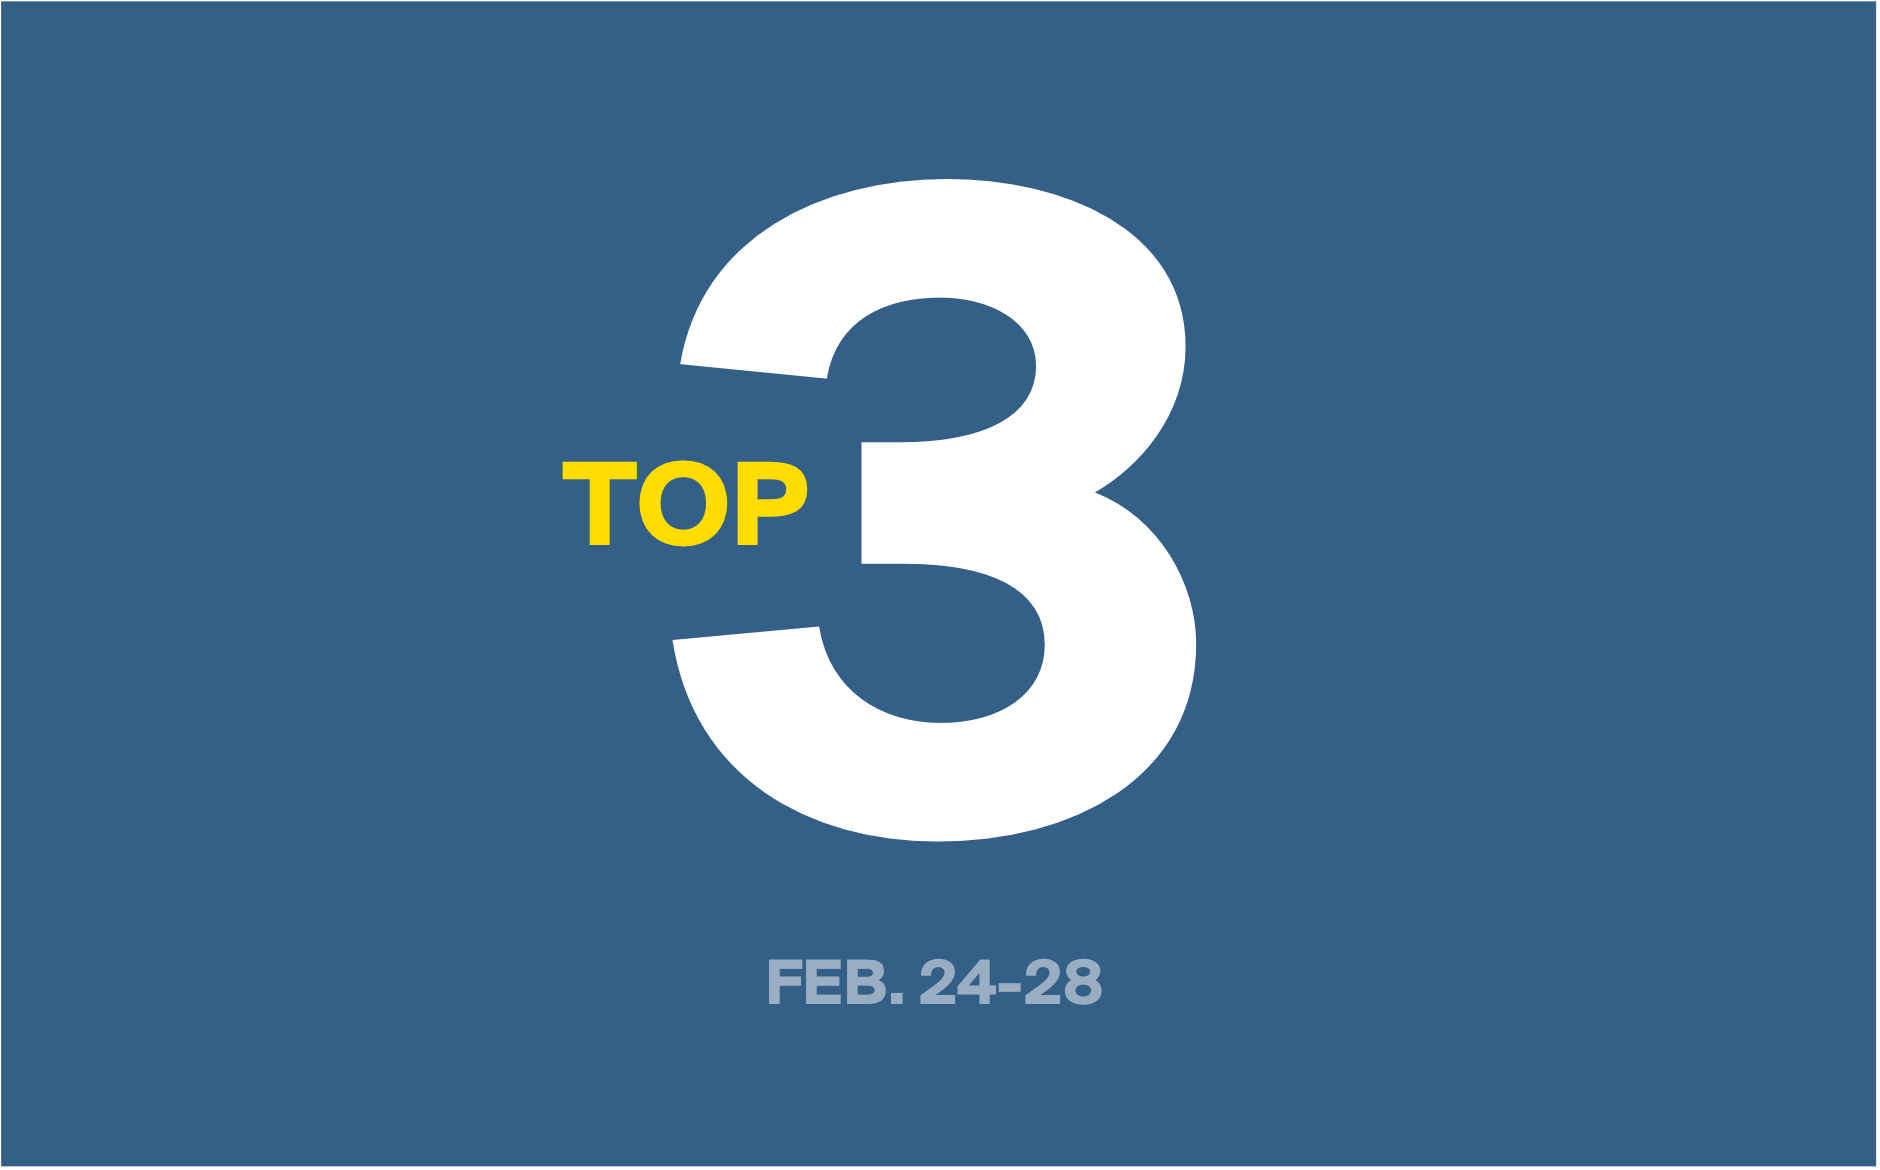 The 3 Biggest Financings Announced This Week (Feb. 24-28)